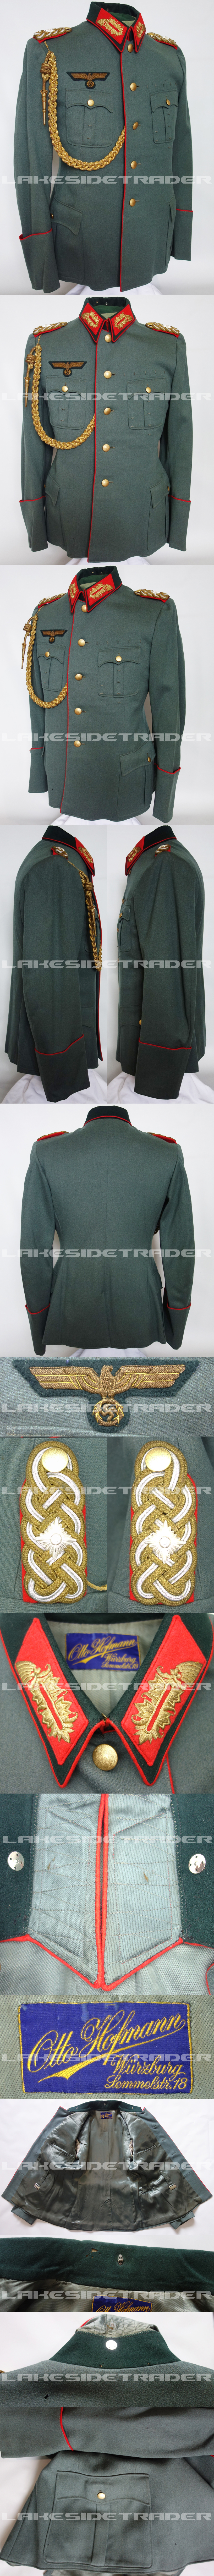 Army Generalleutnant Service Tunic